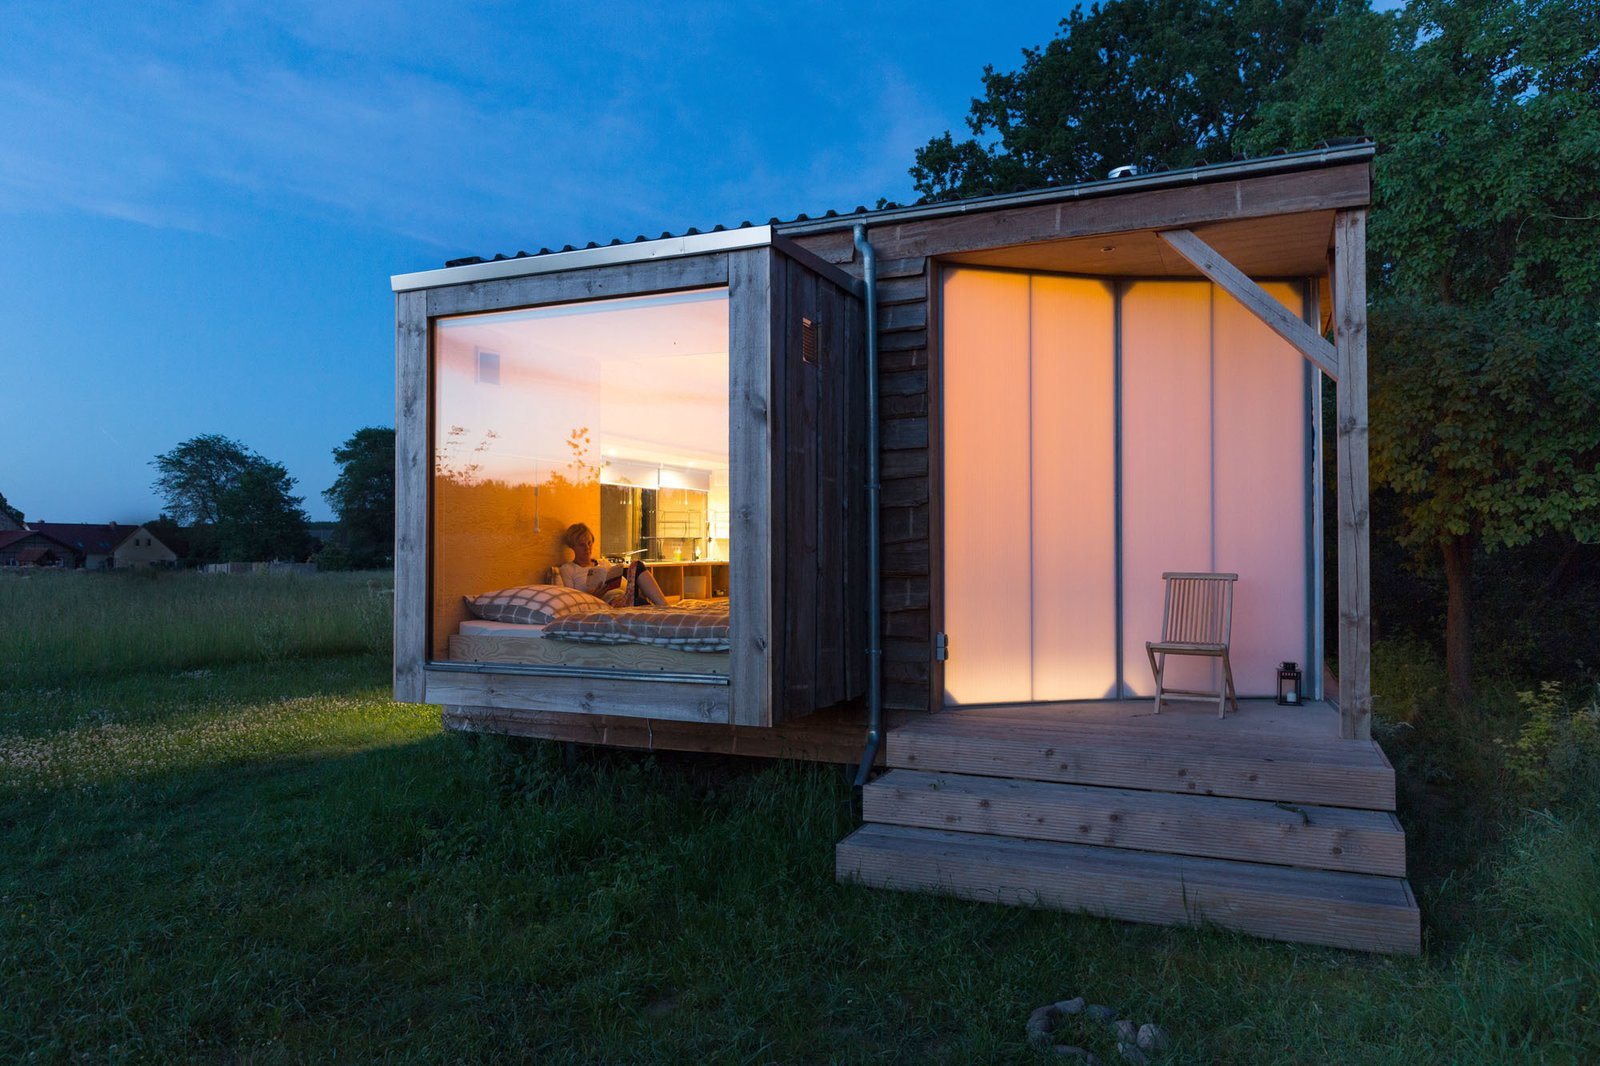 Suspended over the meadow, the bedroom boasts a large glass pane, while the transparent screen door allows the surrounding trees to cast playful shadows across it.